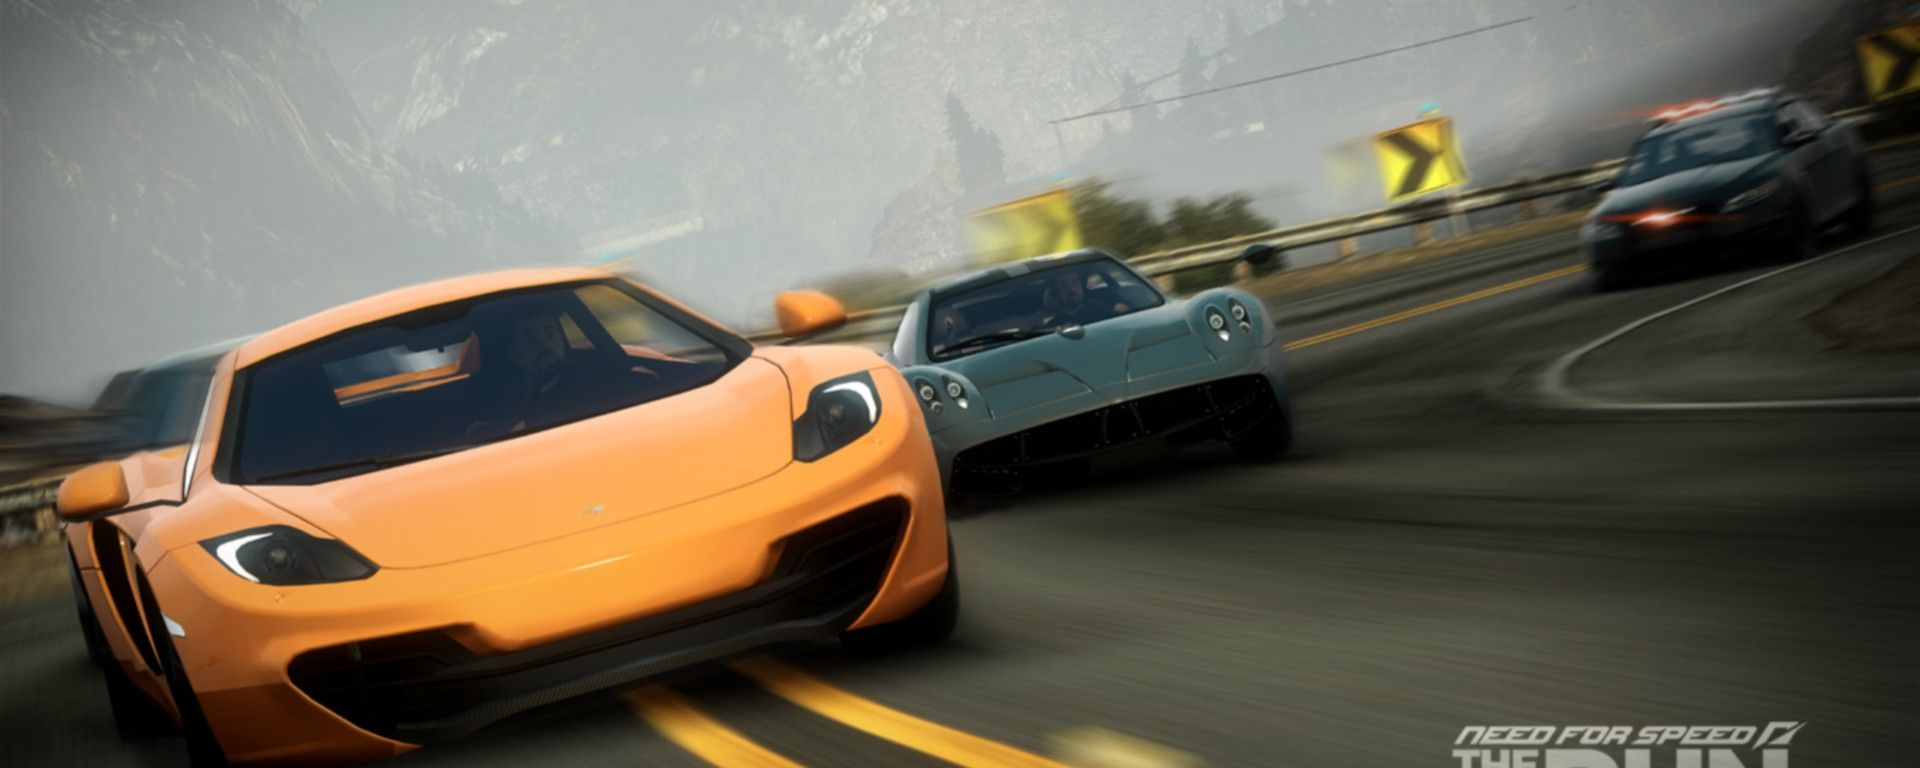 Need For Speed diventa un Film